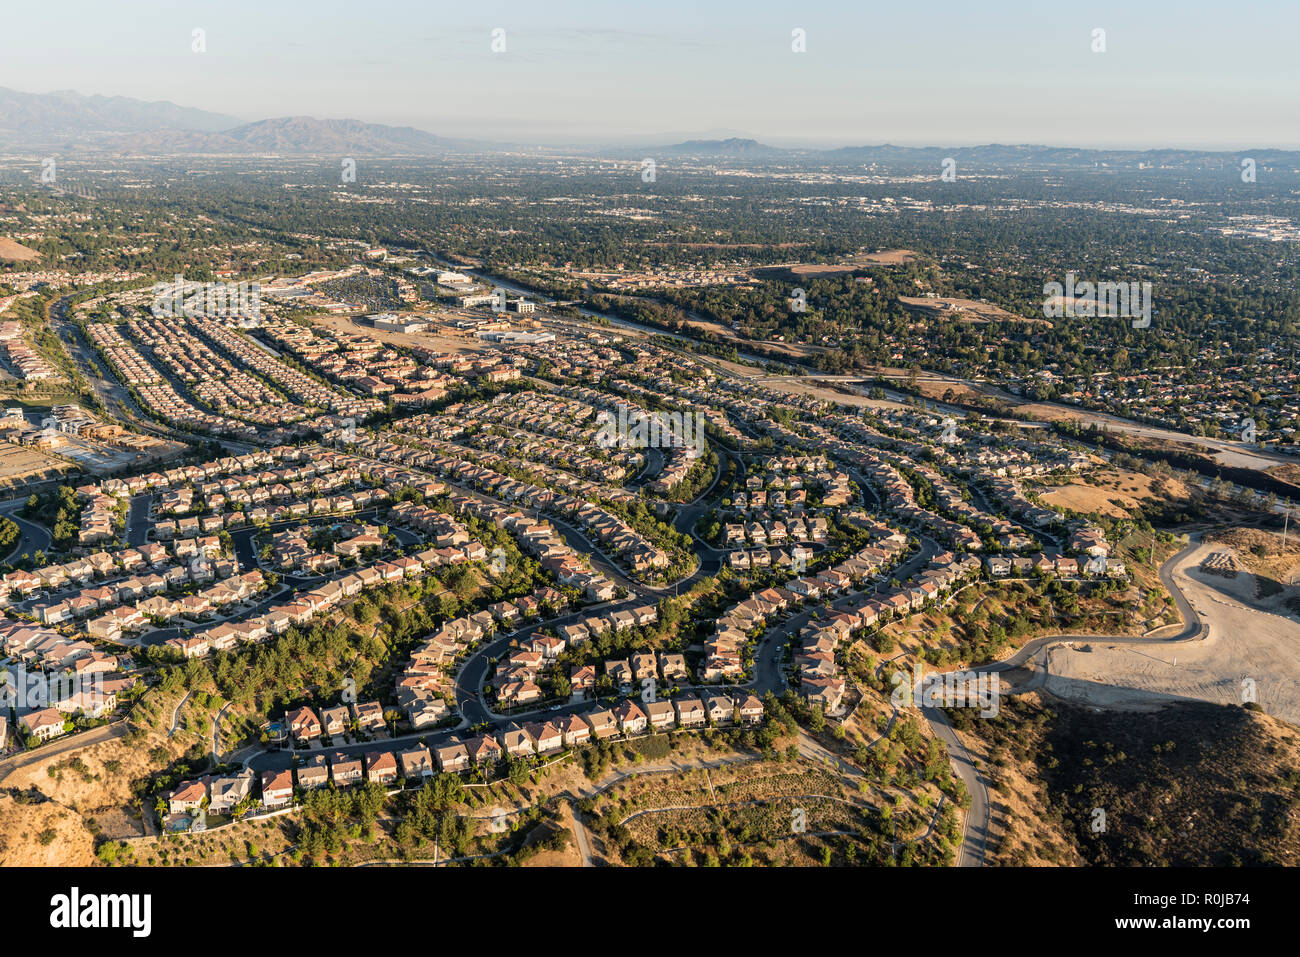 Aerial view of Porter Ranch cul de sac streets and the San Fernando Valley in Los Angeles, California. - Stock Image